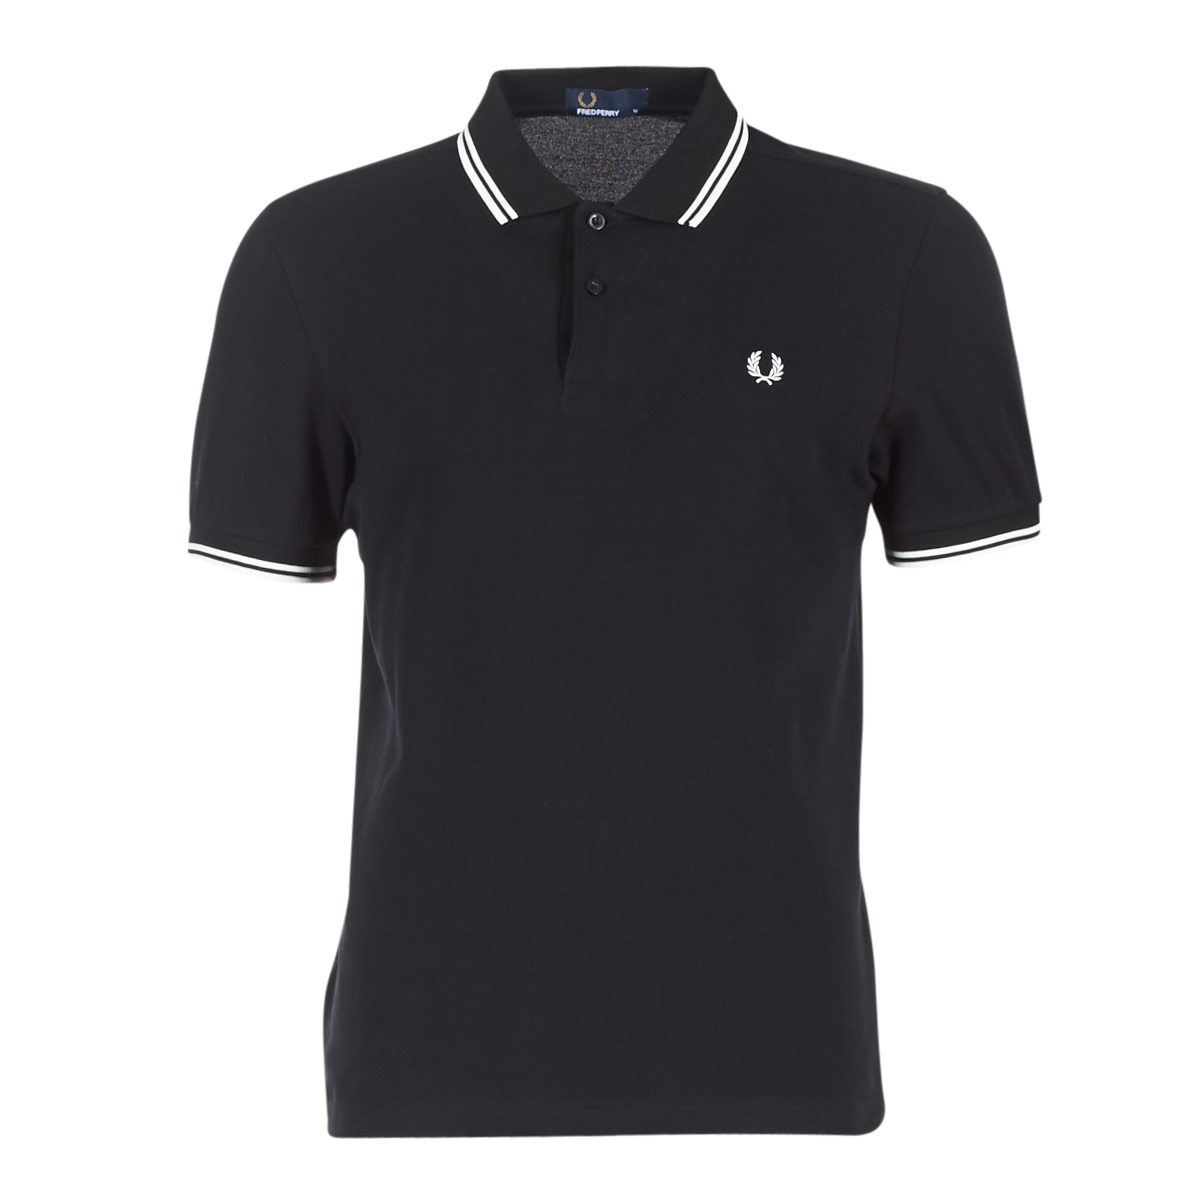 Fred Perry TWIN TIPPED FRED PERRY SHIRT Noir / Blanc